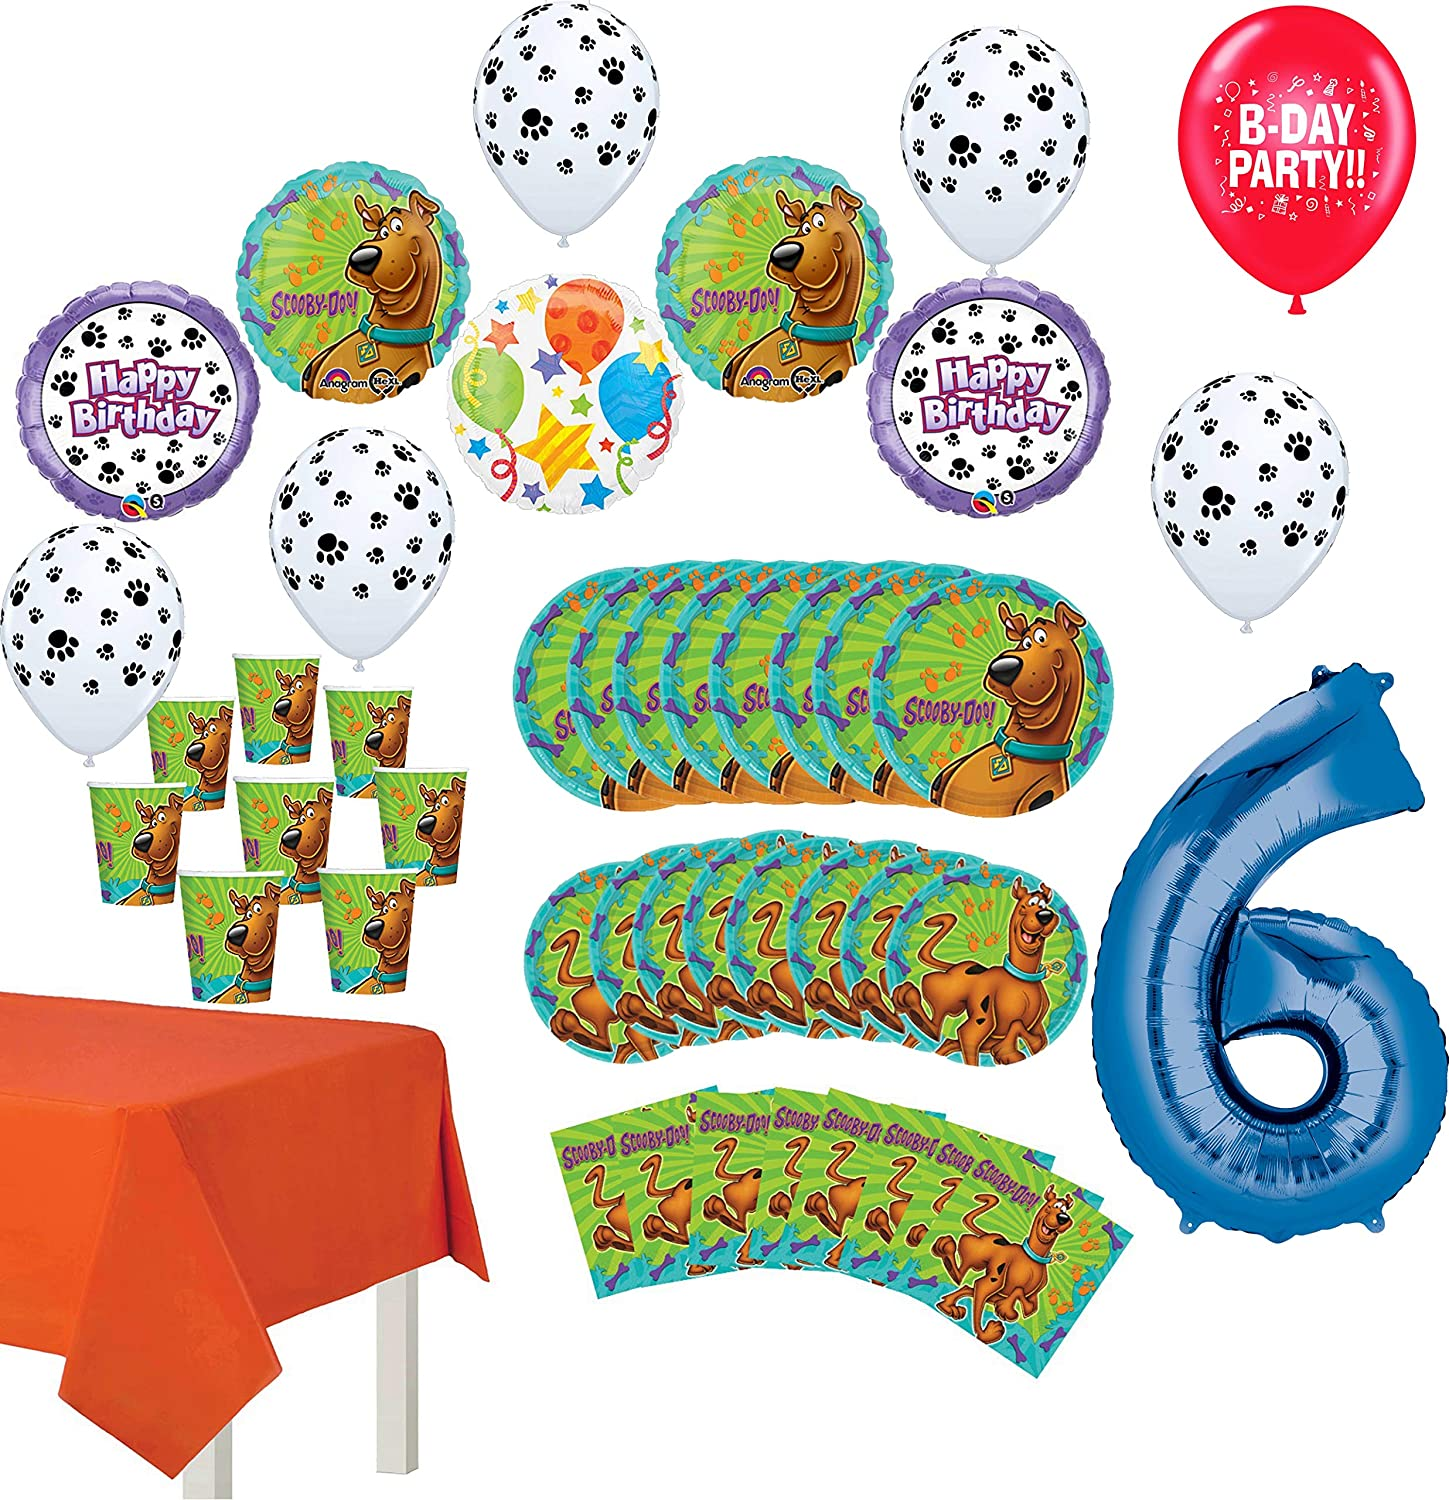 Scooby Doo Party Supplies 6th Birthday 8 Guest Table Decorations and Balloon Bouquet